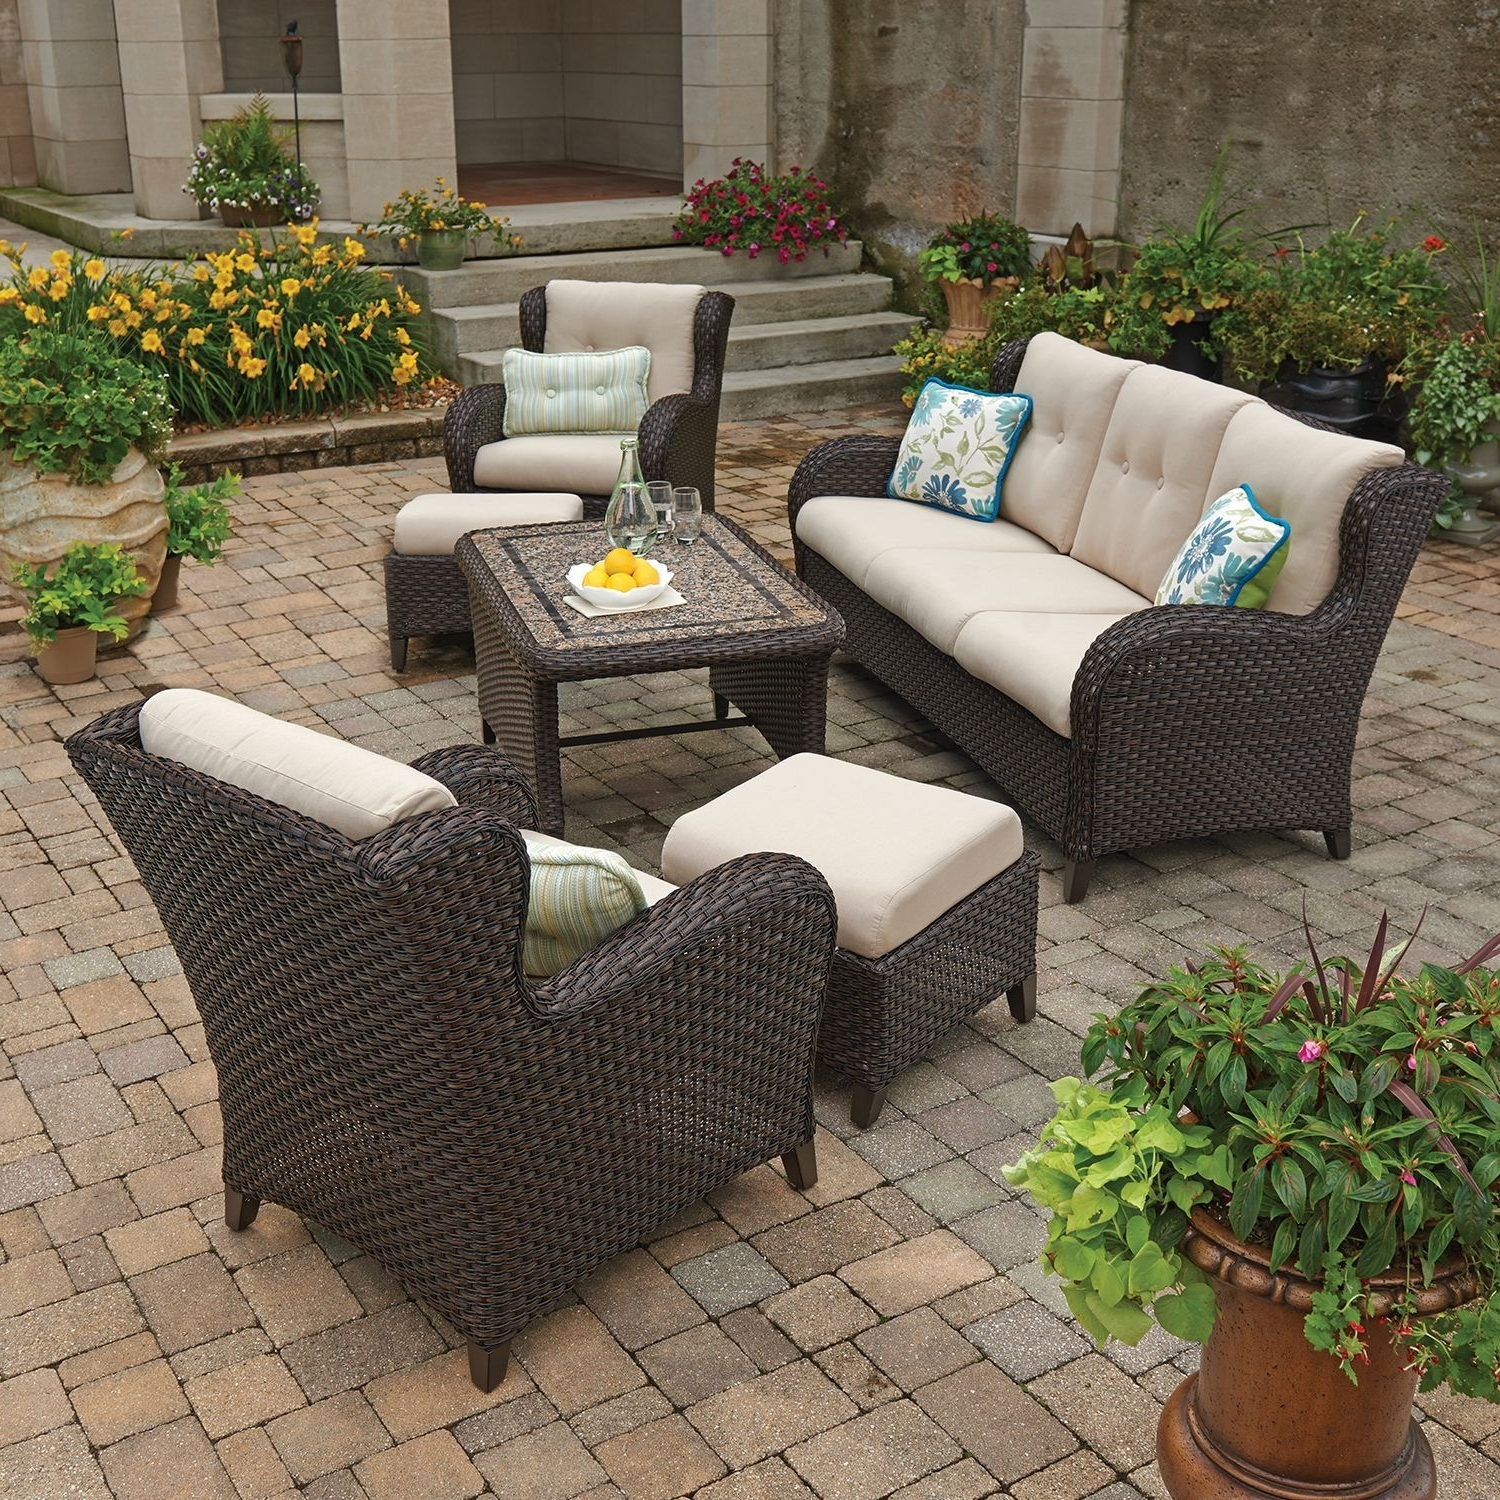 Latest Patio Conversation Sets At Sam's Club For Member's Mark Heritage 6 Piece Deep Seating Set With Premium (View 5 of 15)